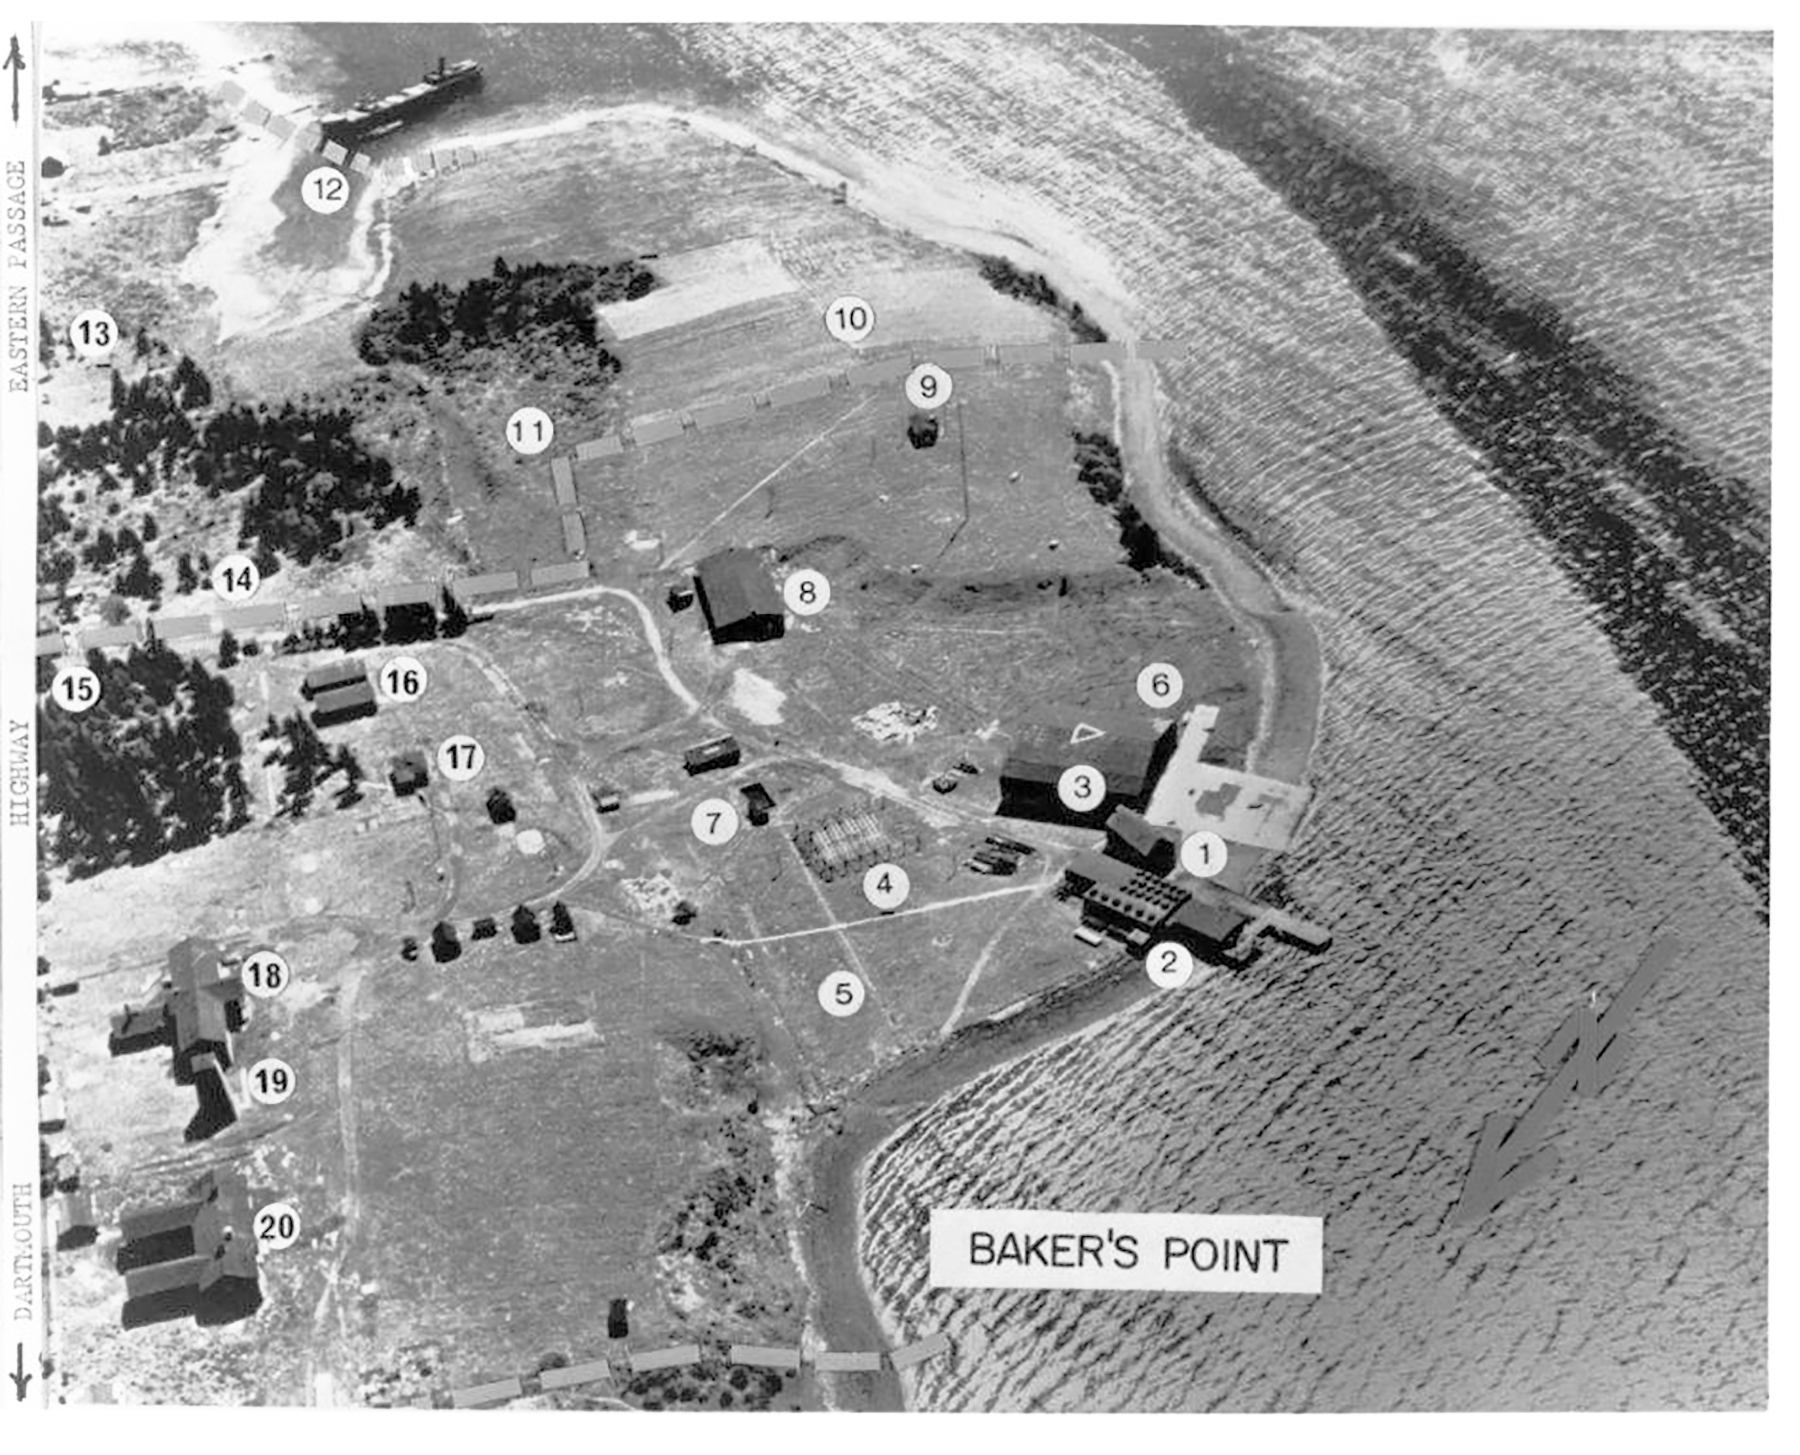 An undated aerial view of the facilities on the small promontory, Baker Point, in Halifax Harbour's Eastern Passage, which became U.S. Naval Air Station Halifax. LEGEND: 1) Old fish plant; dilapidated by 1918. 2) Fish plant buildings converted to aircraft repair shops. 3) Prefabricated hangar erected by U.S. Naval Air Station under Lieutenant Byrd in 1918. 4) Framework for canvas-covered kite balloon hangar. 5) Z hangar site, Second World War; also the site of the Shearwater Yacht Club. 6) X hangar site, Second World War; floor converted to tennis courts. 7) Outdoor reservoir and pump house for firefighting. 8) Administration building; 9) Bennett house, converted to air traffic control building. In 1942, E Block was erected on this site, to house RCAF personnel, converted to 406 Squadron technical training facility and Fleet Diving Unit offices. 10) A long sloping hill cut down to fill areas 1 and 12. 11) Swamp and pond filled circa 1938-40. 12) Bay filled with earth from site 10, which covers one steel and two wooden ship hulls. 13) Site of 4 Building. 14) Prior to government acquisition, a piggery; later site of motor transport garages and gas pump. 15) 1940-48 site of steel water tower; later site of Bank of Montreal and Baden Powell Center. 16) Prior to government acquisition, implement sheds; later site of motor transport garages. 17) Murray house; later, Lieutenant Byrd's cottage. The Murray family owned most of the land that is now Shearwater. 18) Canadian-built barracks for use by U.S. Naval Air Station personnel. 19) Artesian well-fed wooden water tower. By 1938, the water had been declared unusable. 20) Canadian-built barracks for use by U.S. Naval Air Station personnel. PHOTO: DND Archives, CN-3961; LEGEND: Shearwater Aviation Museum